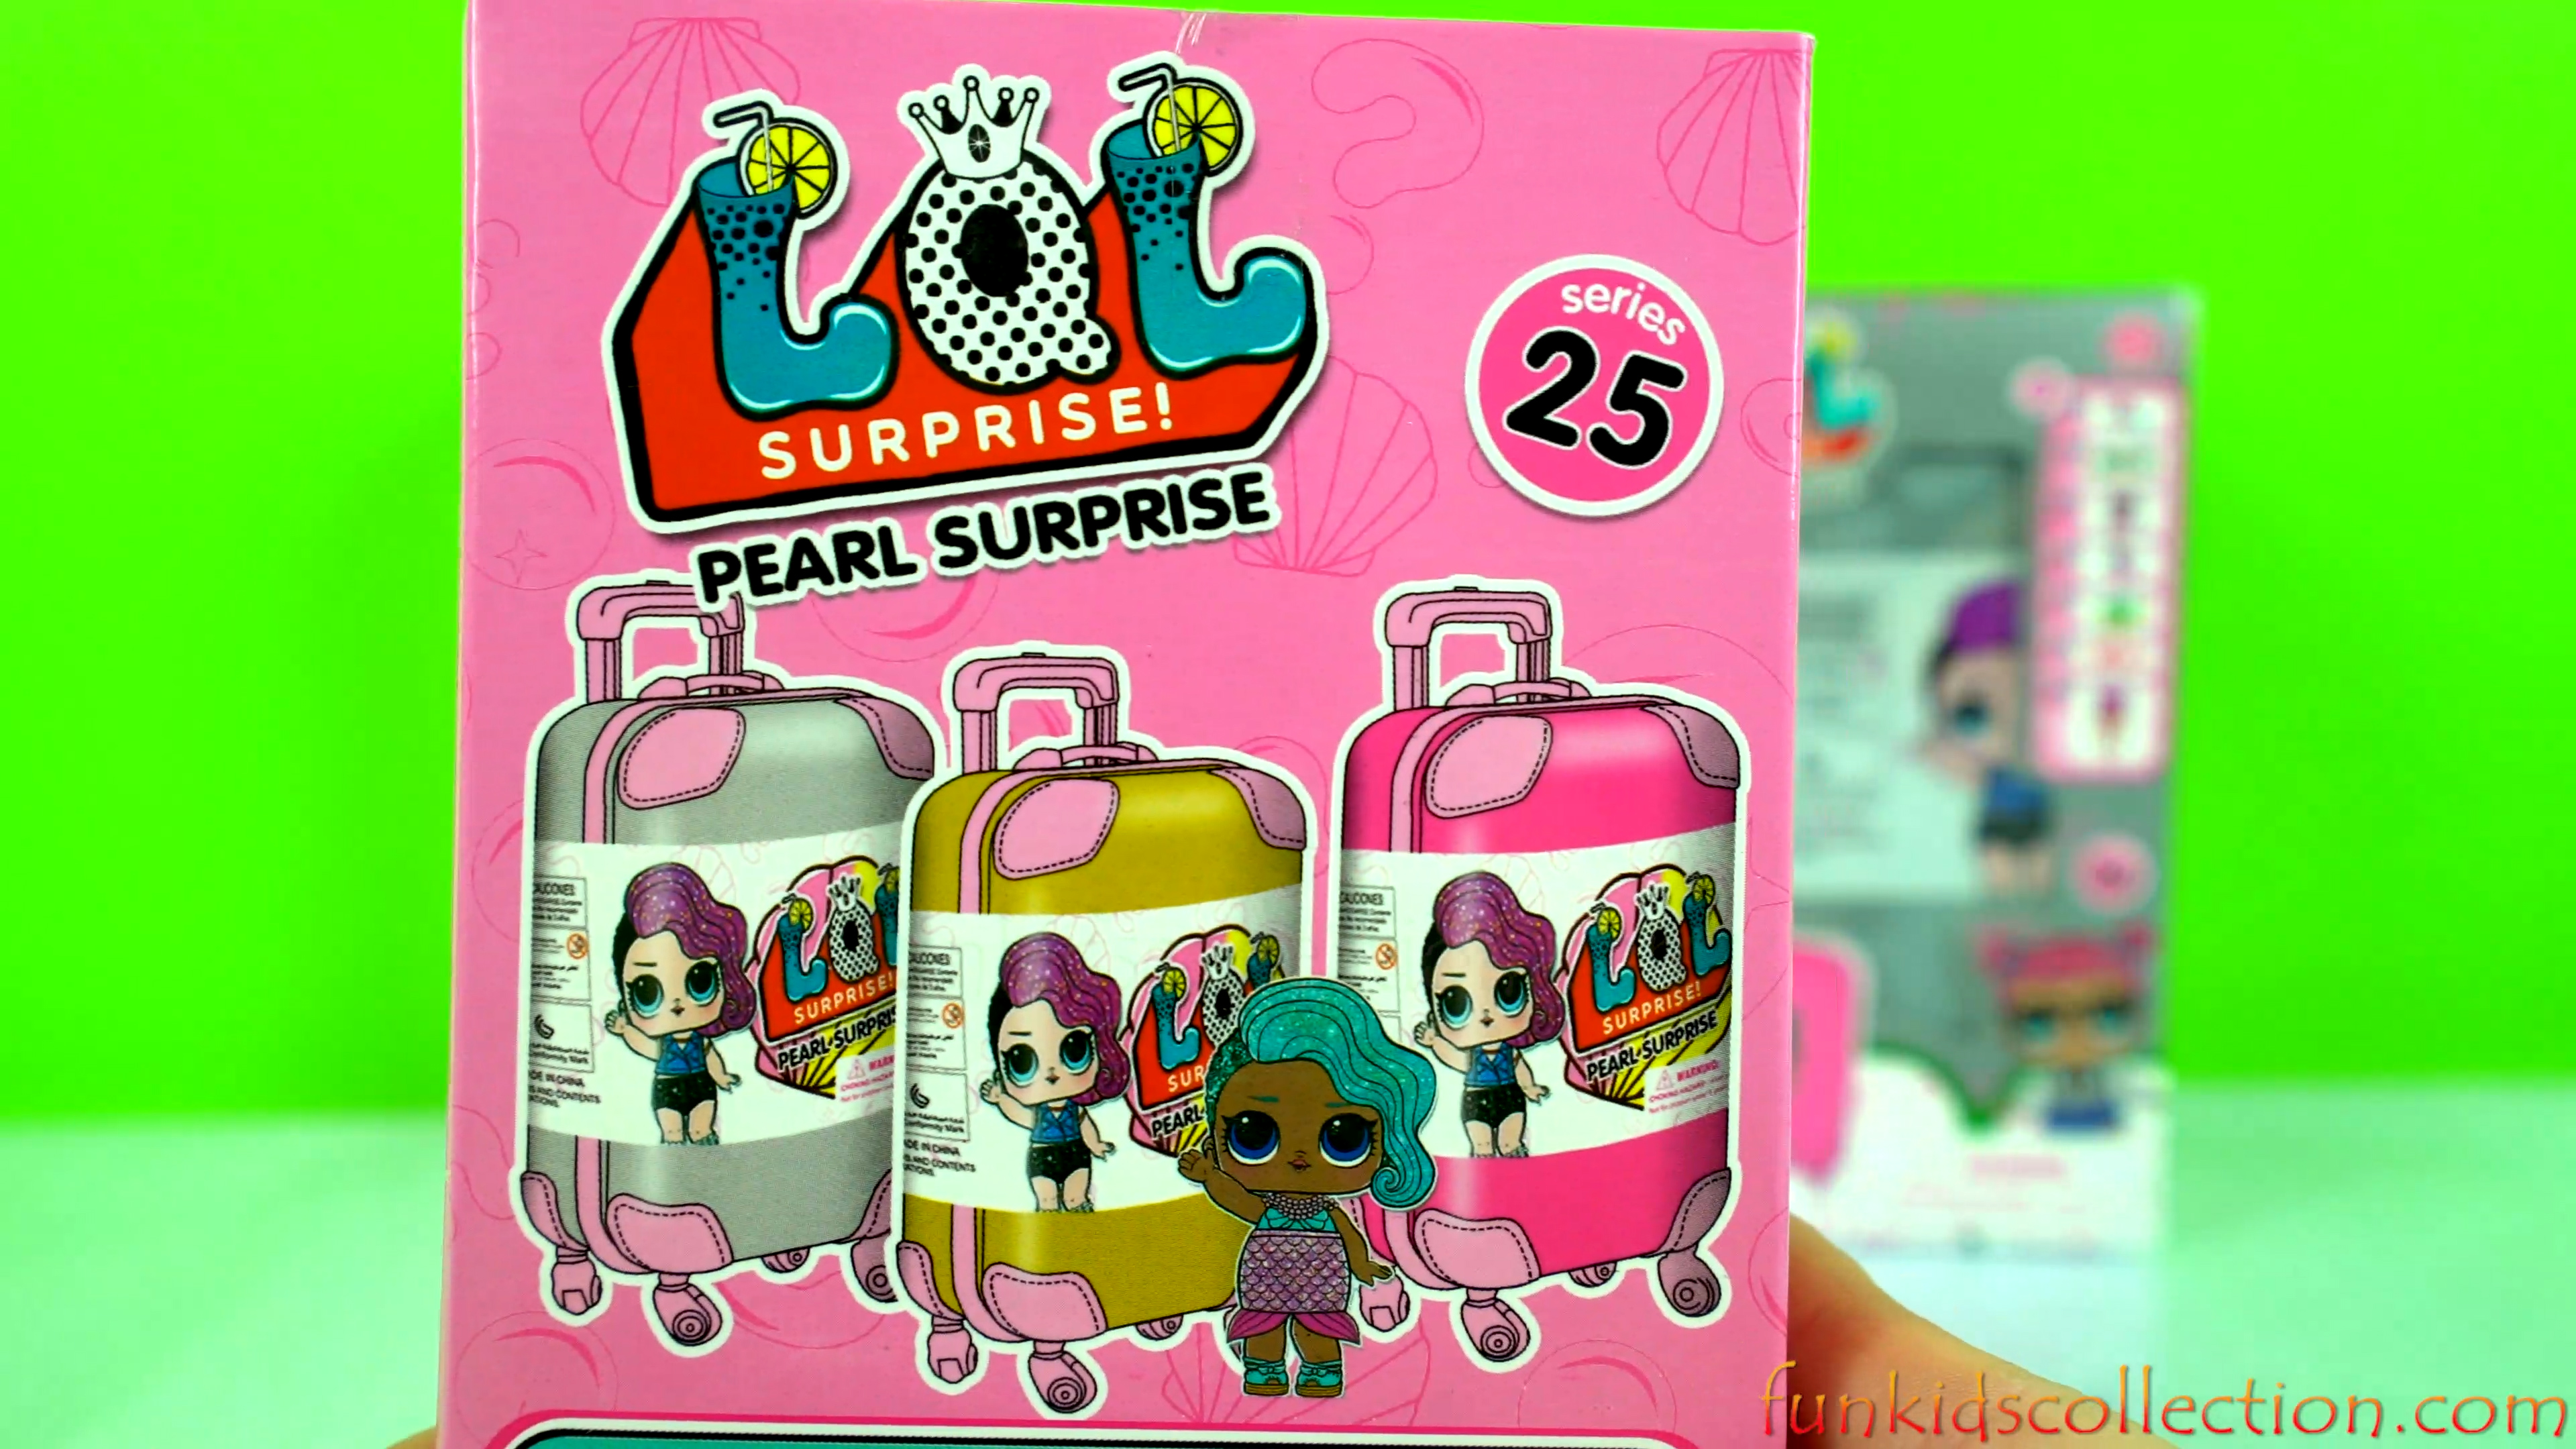 Lol Surprise Pearl Surprise